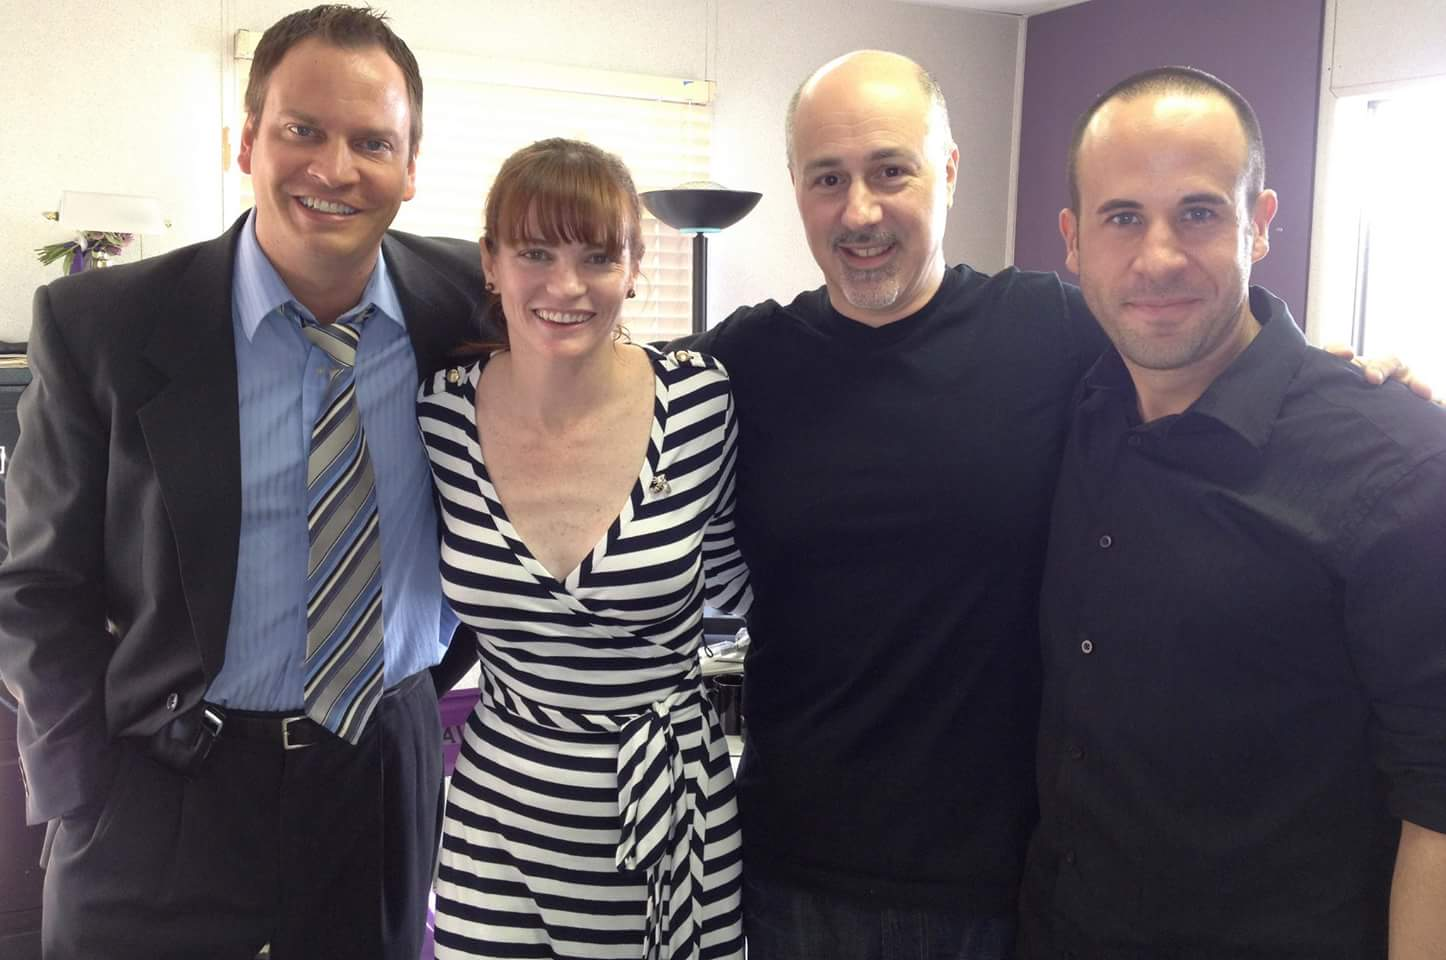 Scott David, Annie Lukowski, Paul DiVito, and Chad Ridgely at an event for The Hand of Now (2013)